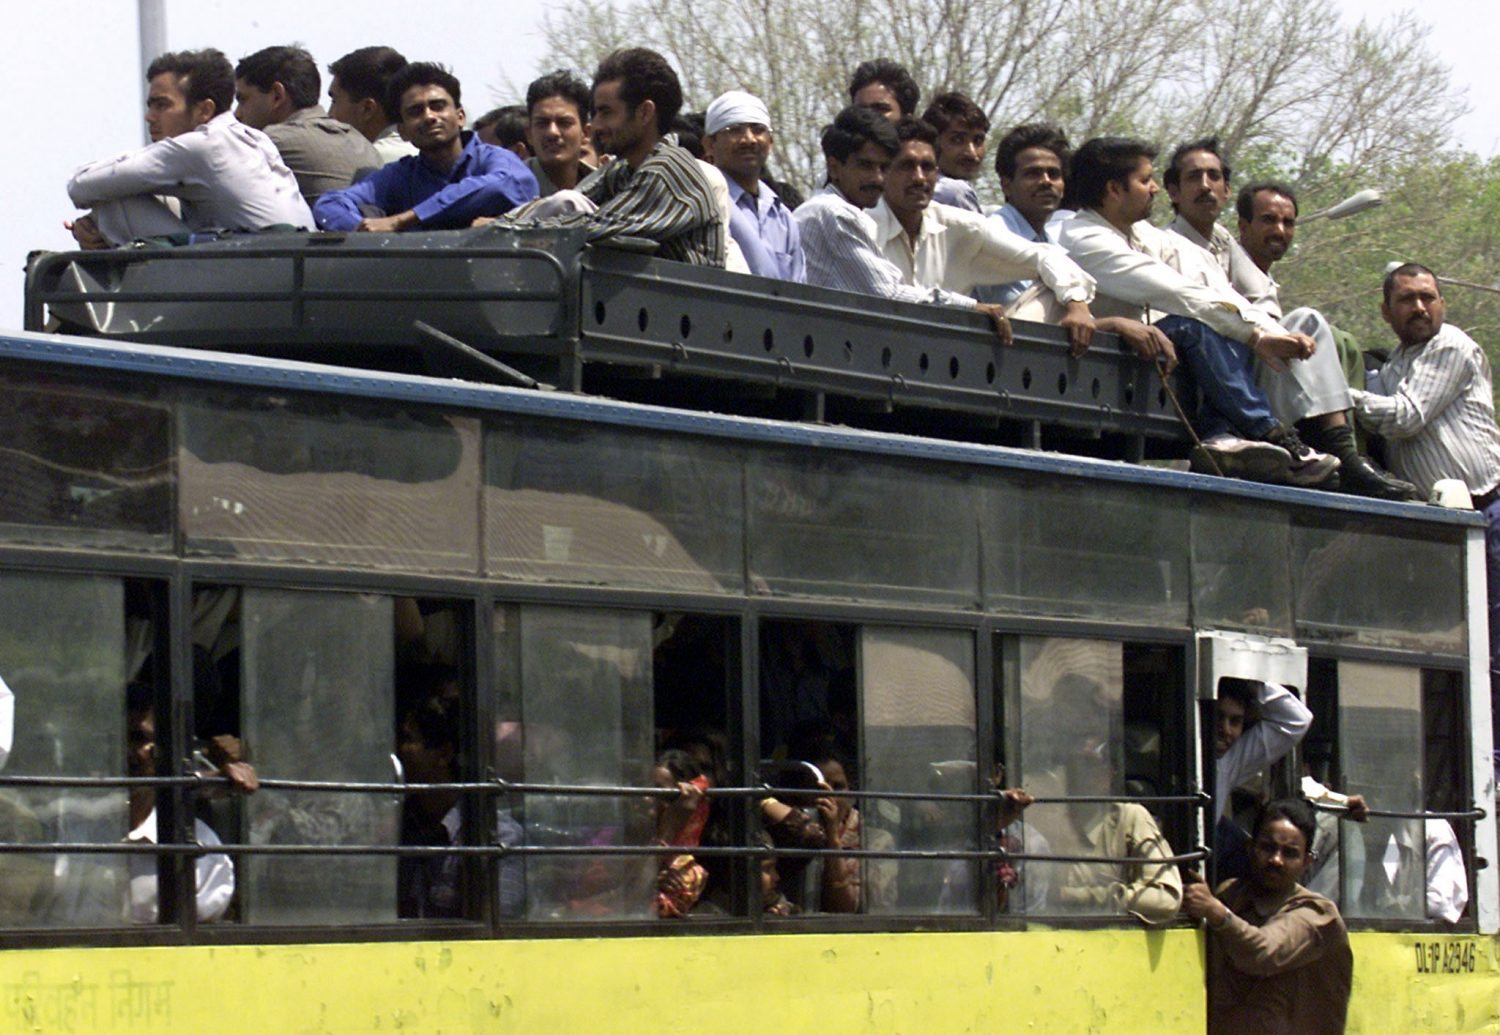 Indians sit on the roof of a overloaded bus in New Delhi April 2, 2001. Commuters in the Indian capital were stranded for a second day running on Monday as thousands of buses and taxis went off the roads under a court order to switch to cleaner fuel. Some 15,000 private and state-run buses and thousands of taxis and three-wheelers had been ordered by the Supreme Court to change to compressed natural gas from diesel by April 1 in a drive to clean the capital's dirty air. PK/JD - RTR13OCB